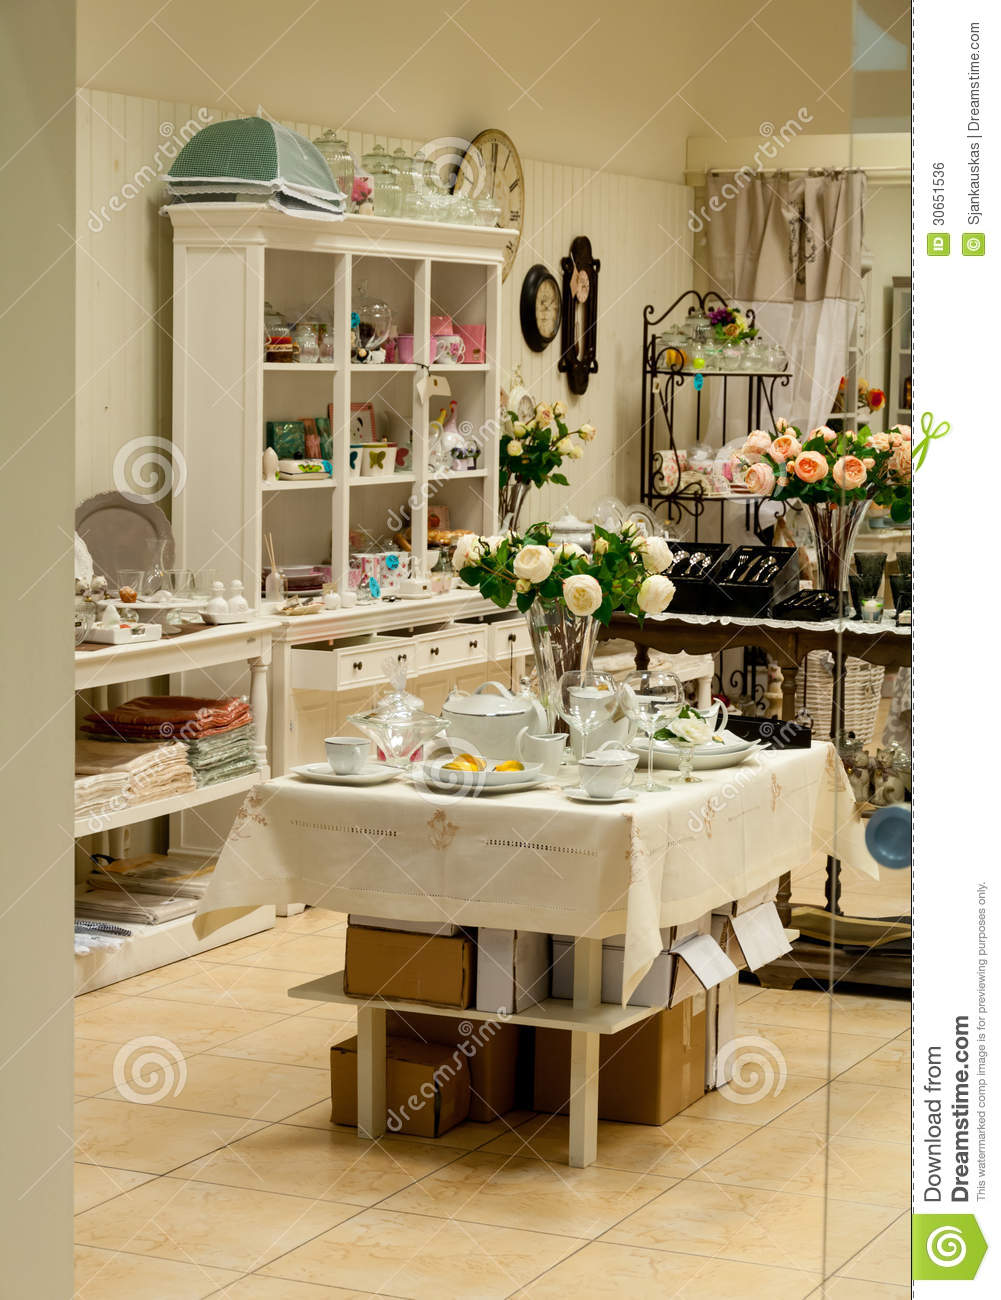 home decor and dishes shop - Home Decor Photos Free